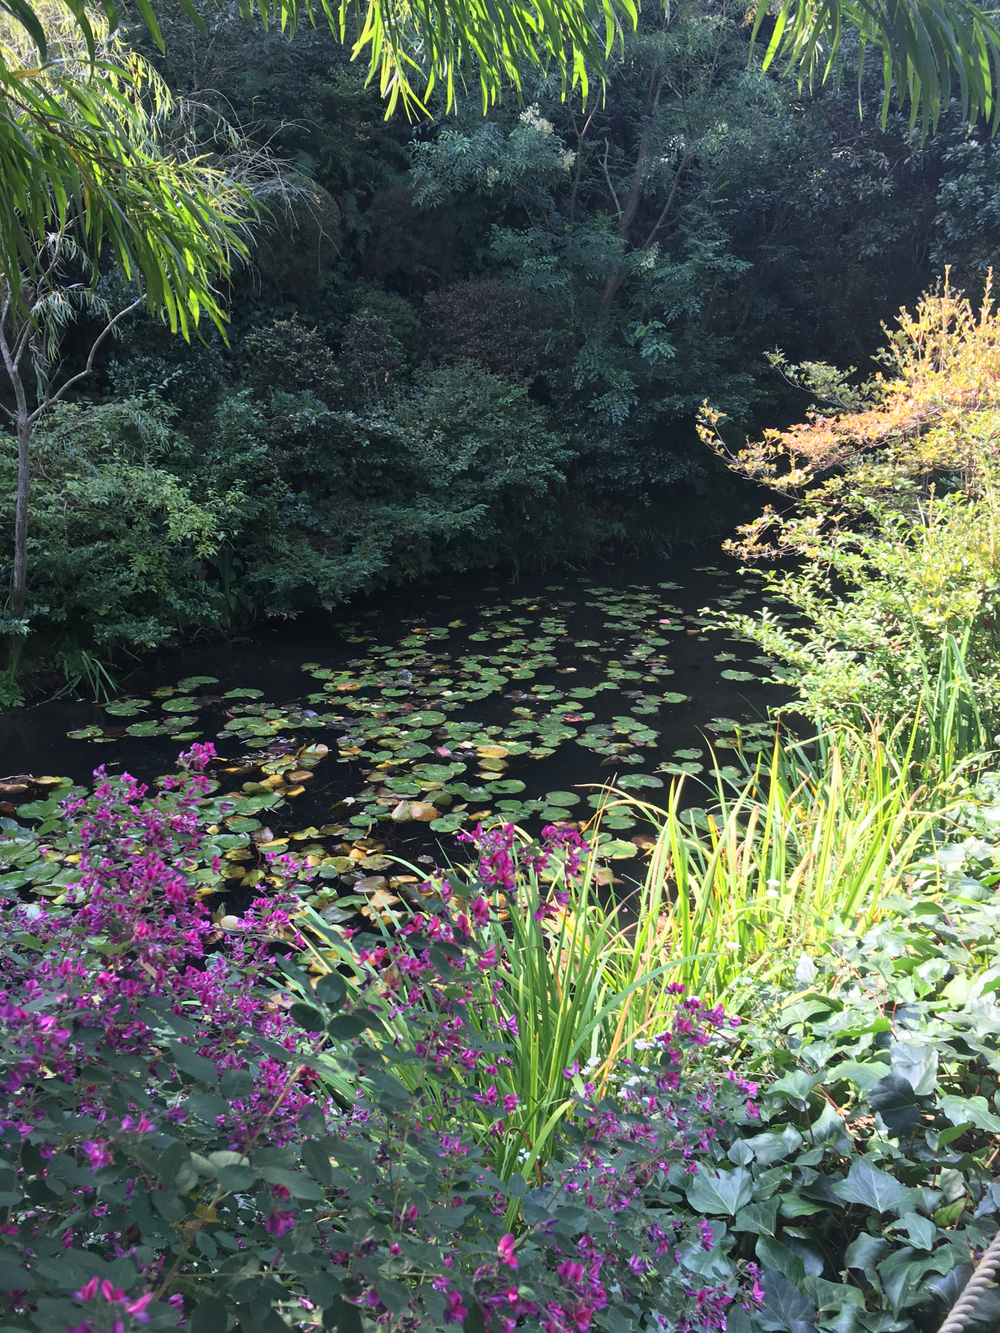 Garden inspired by Giverny